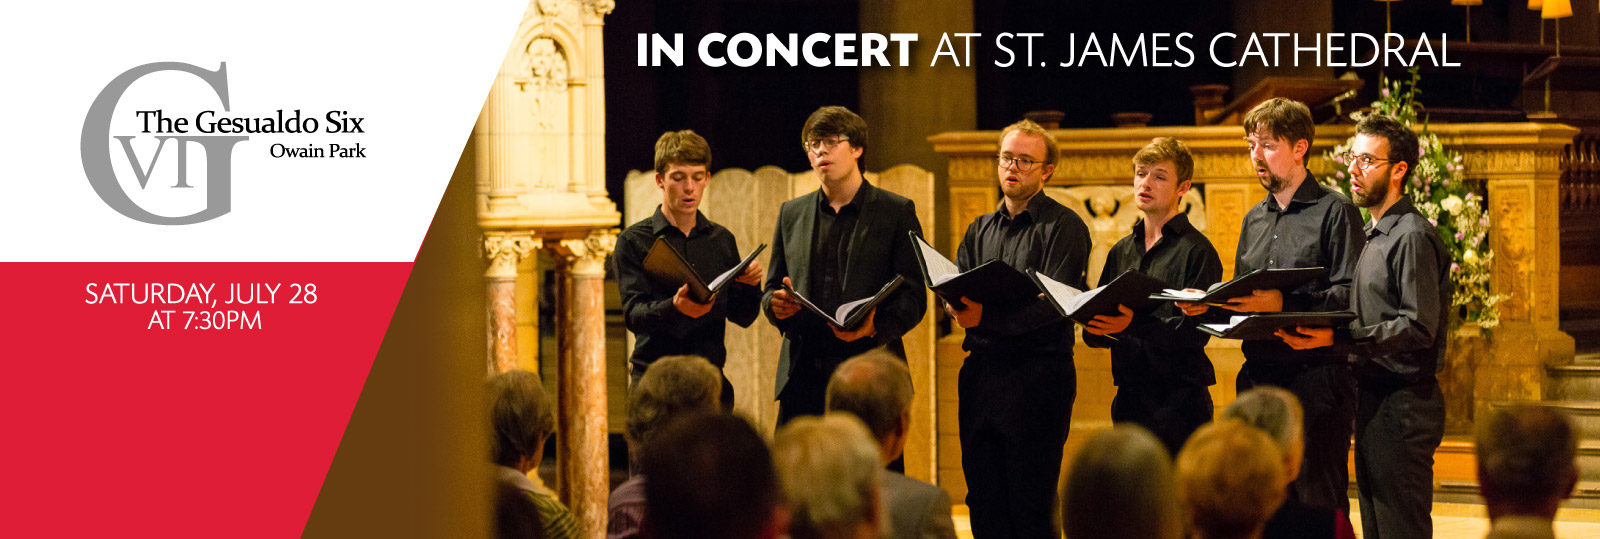 The Gesualdo Six in Concert